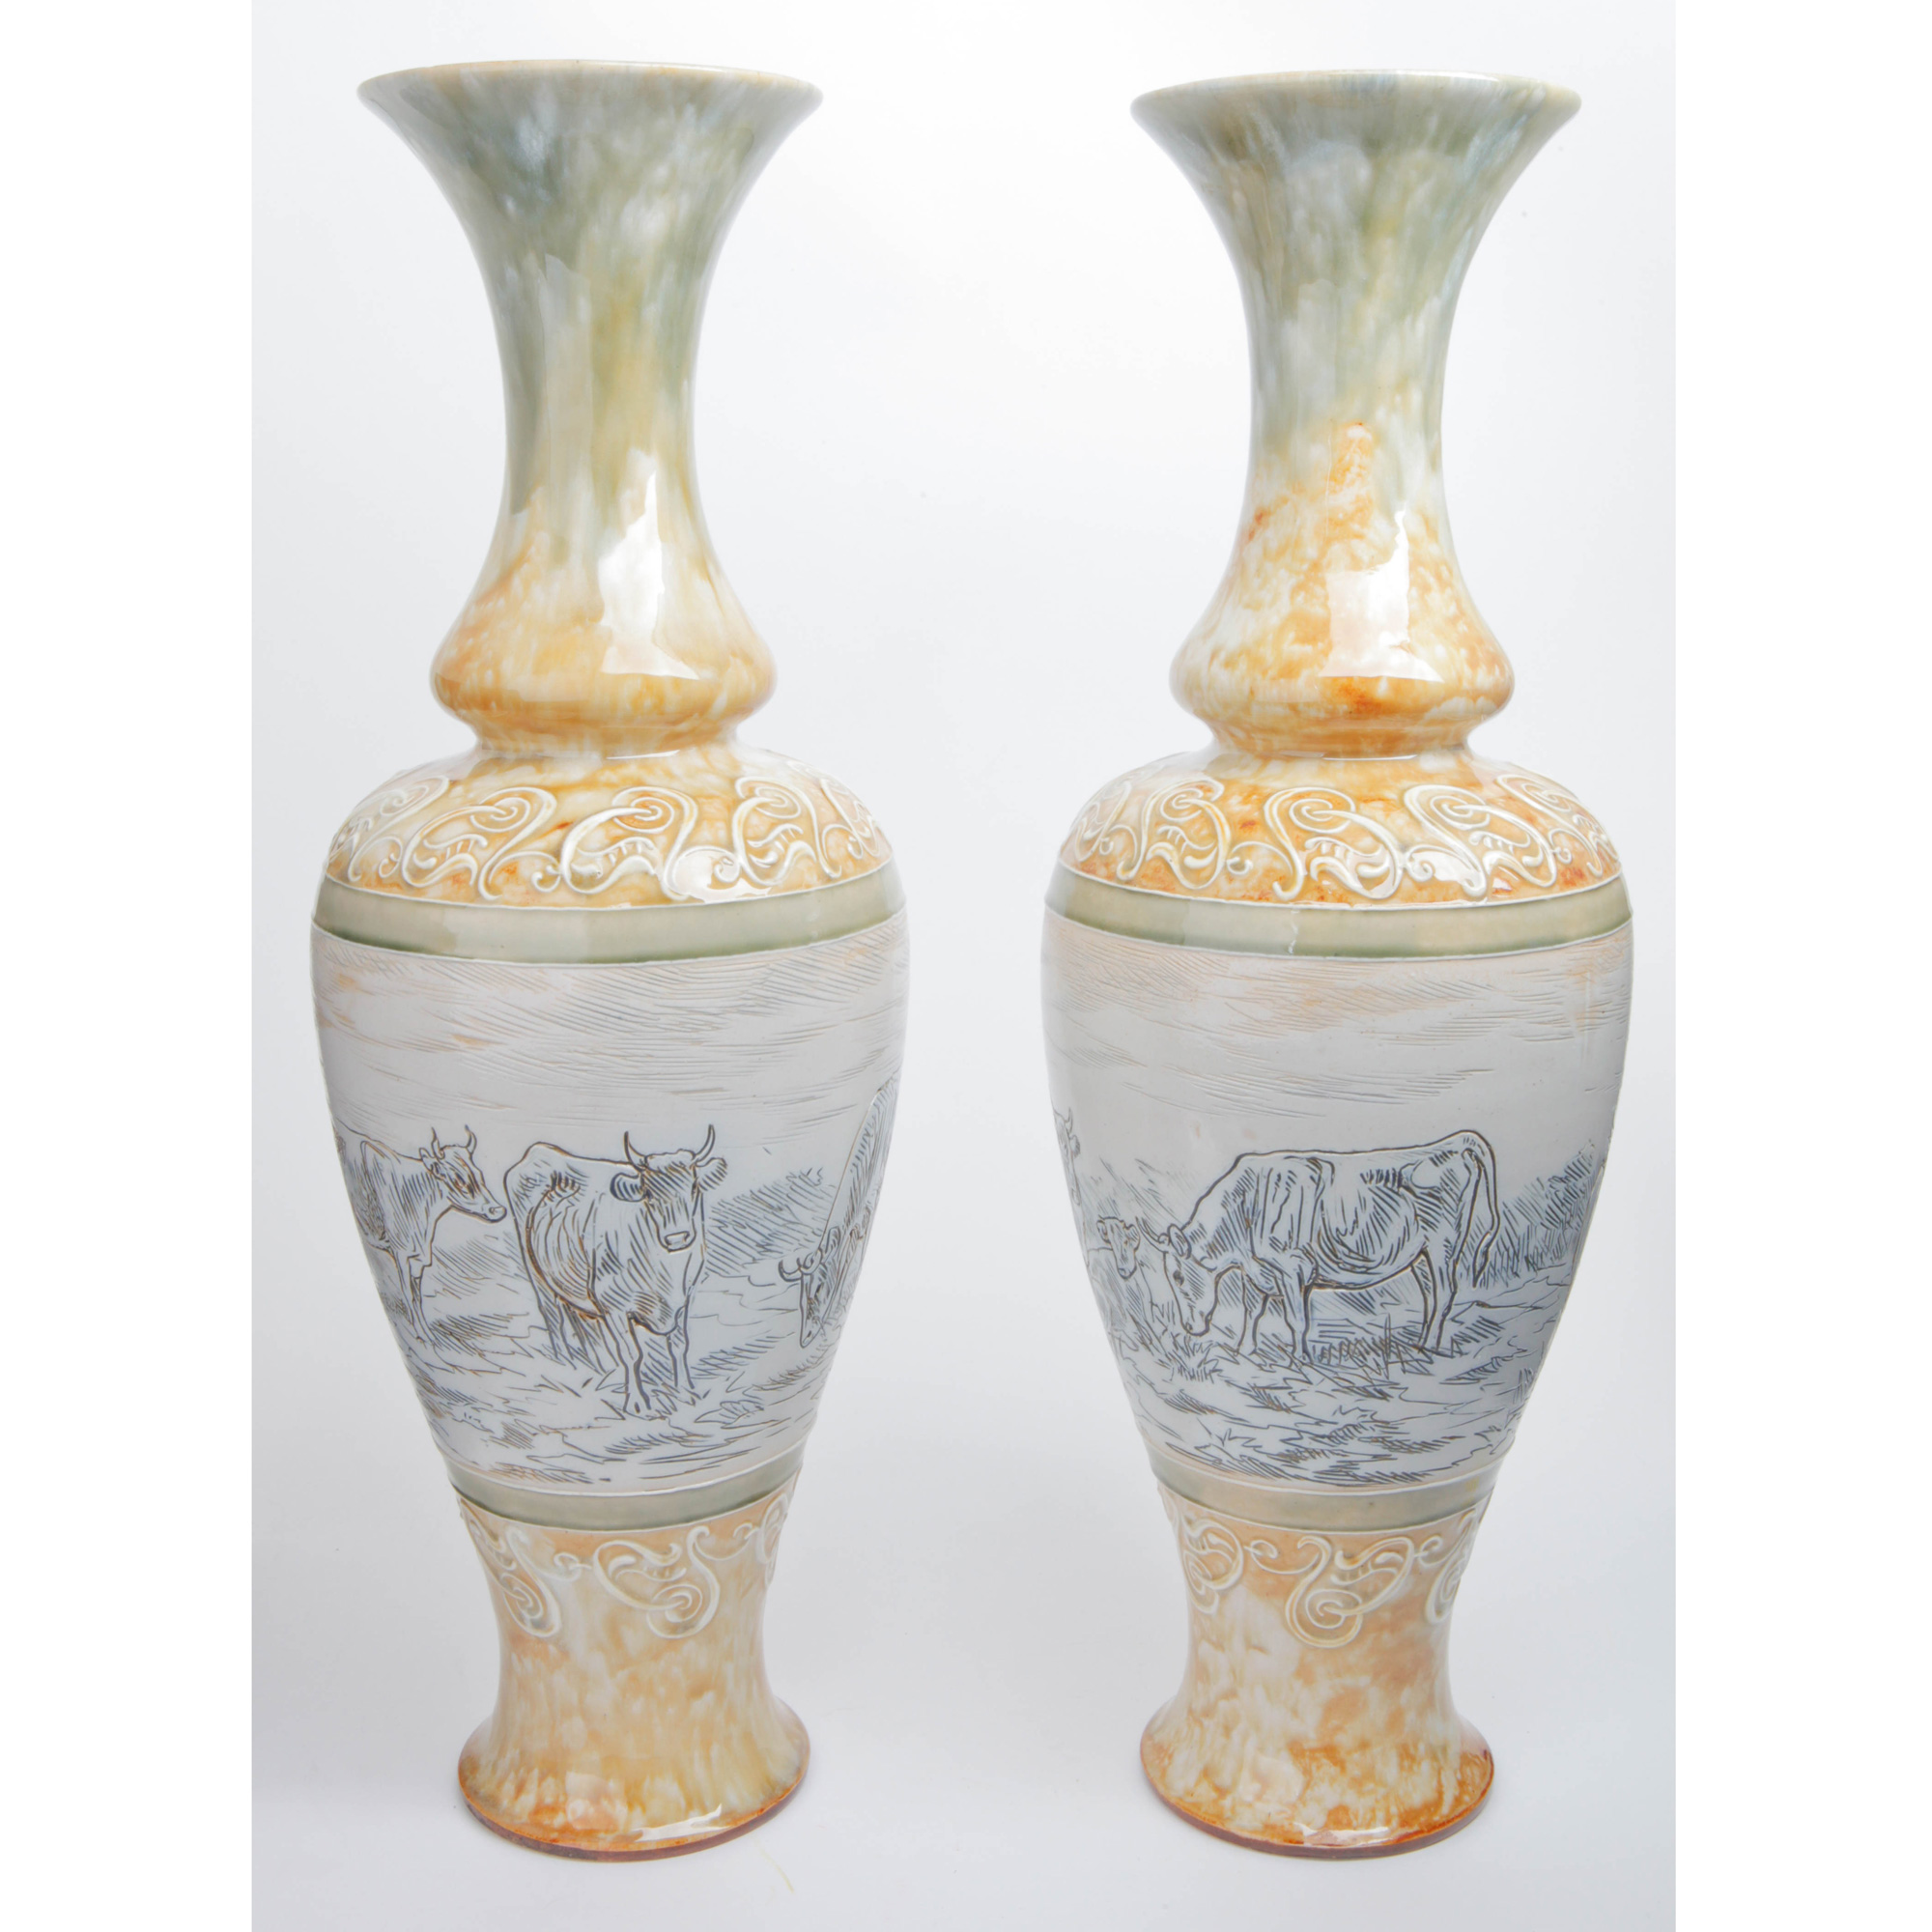 Cattle Vase Pair - Doulton Lambeth